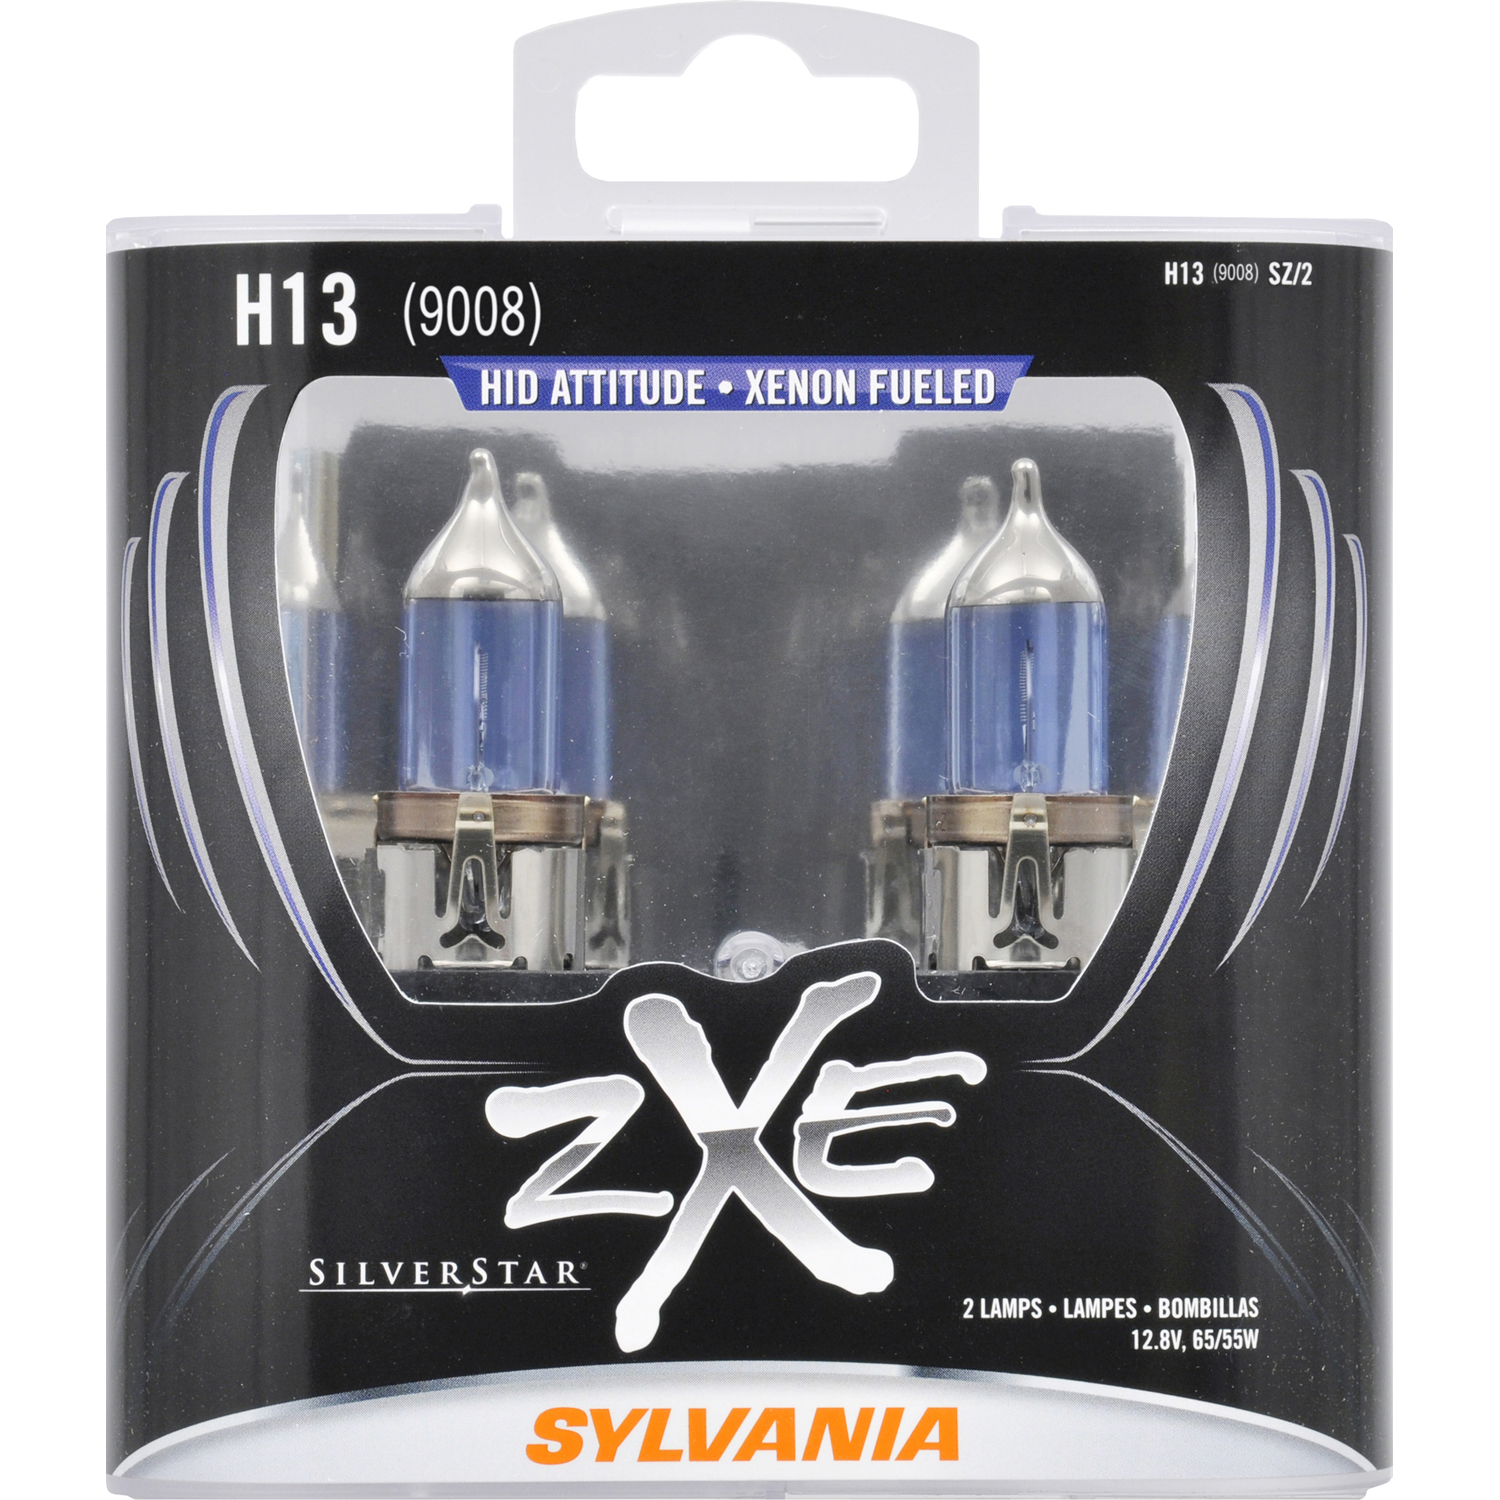 SYLVANIA H13 SilverStar zXe Halogen Headlight Bulb, Pack of 2